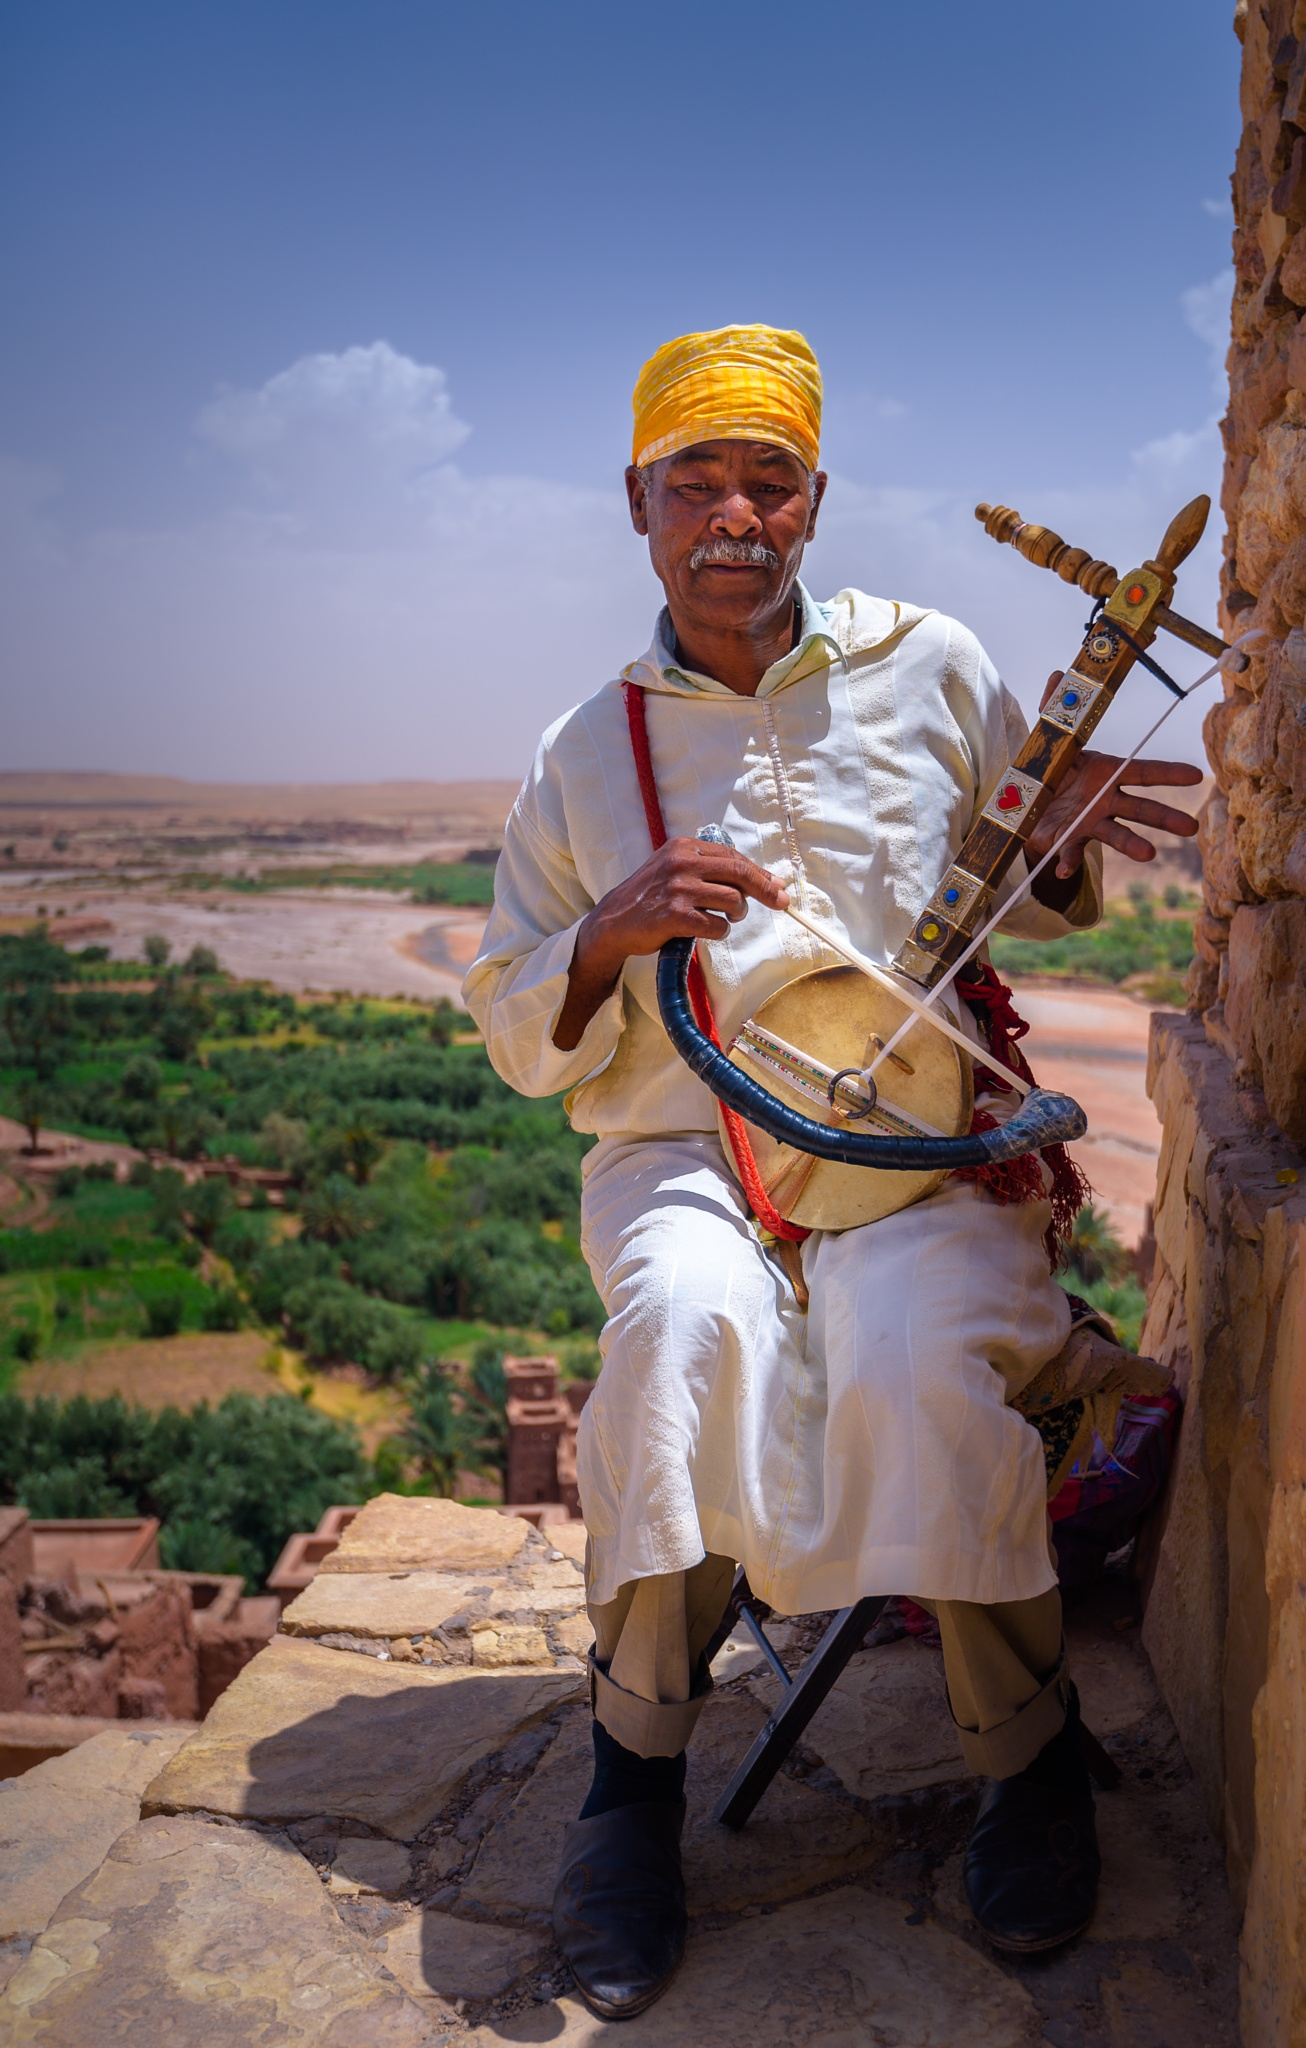 The Street Musician of Ait Benhaddou by Zouhair Lhaloui